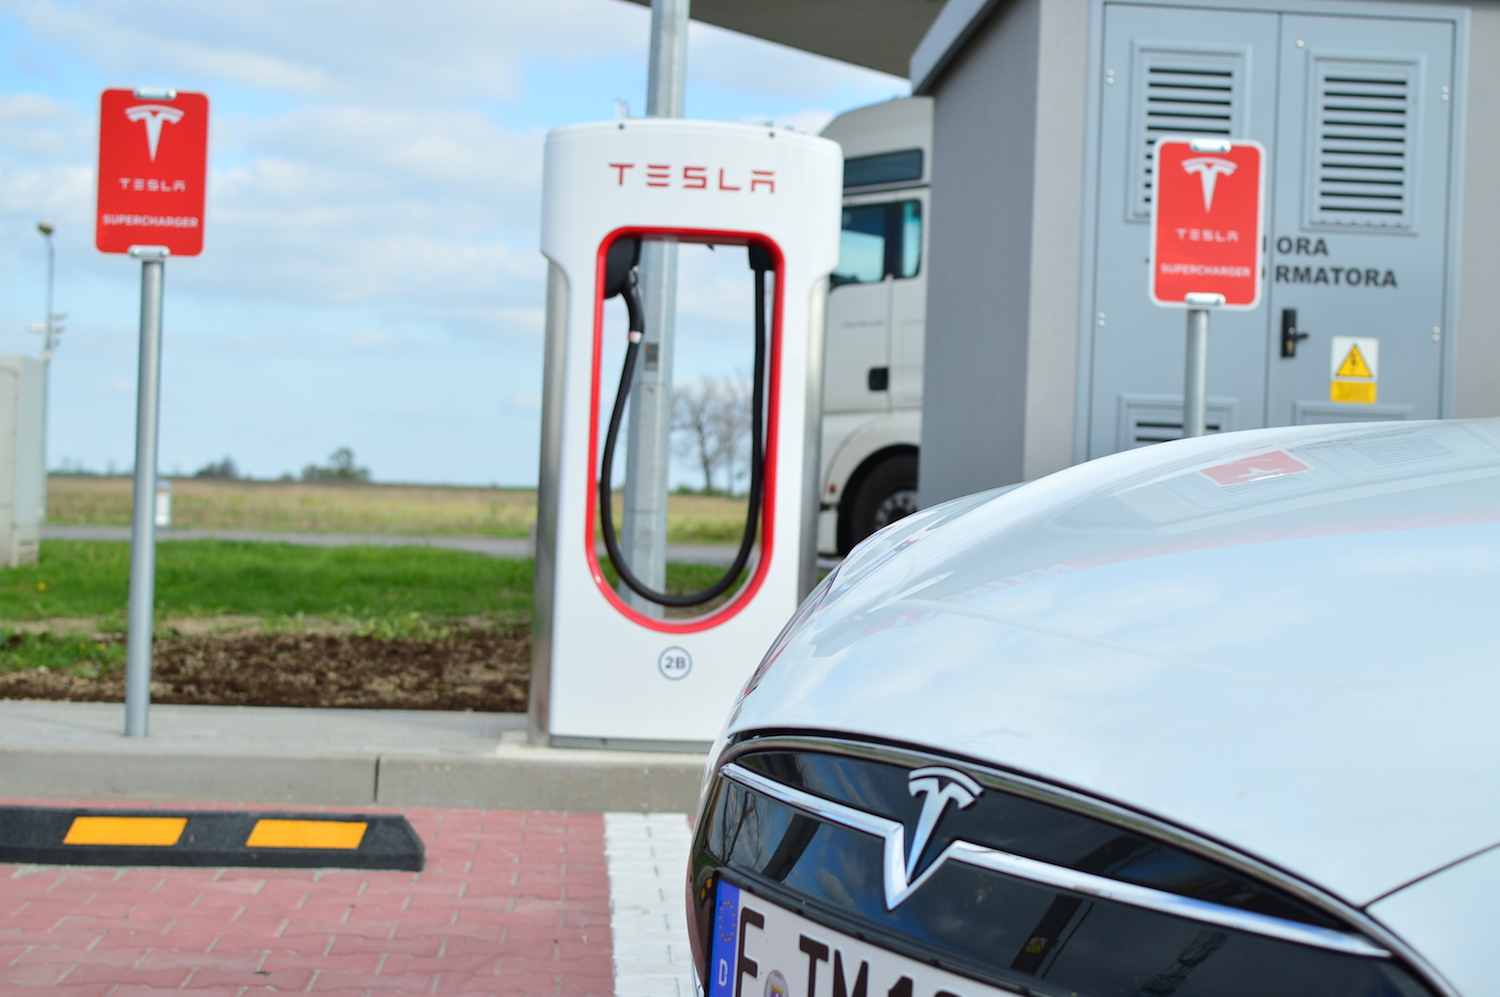 tesla model s wroclaw supercharger 16